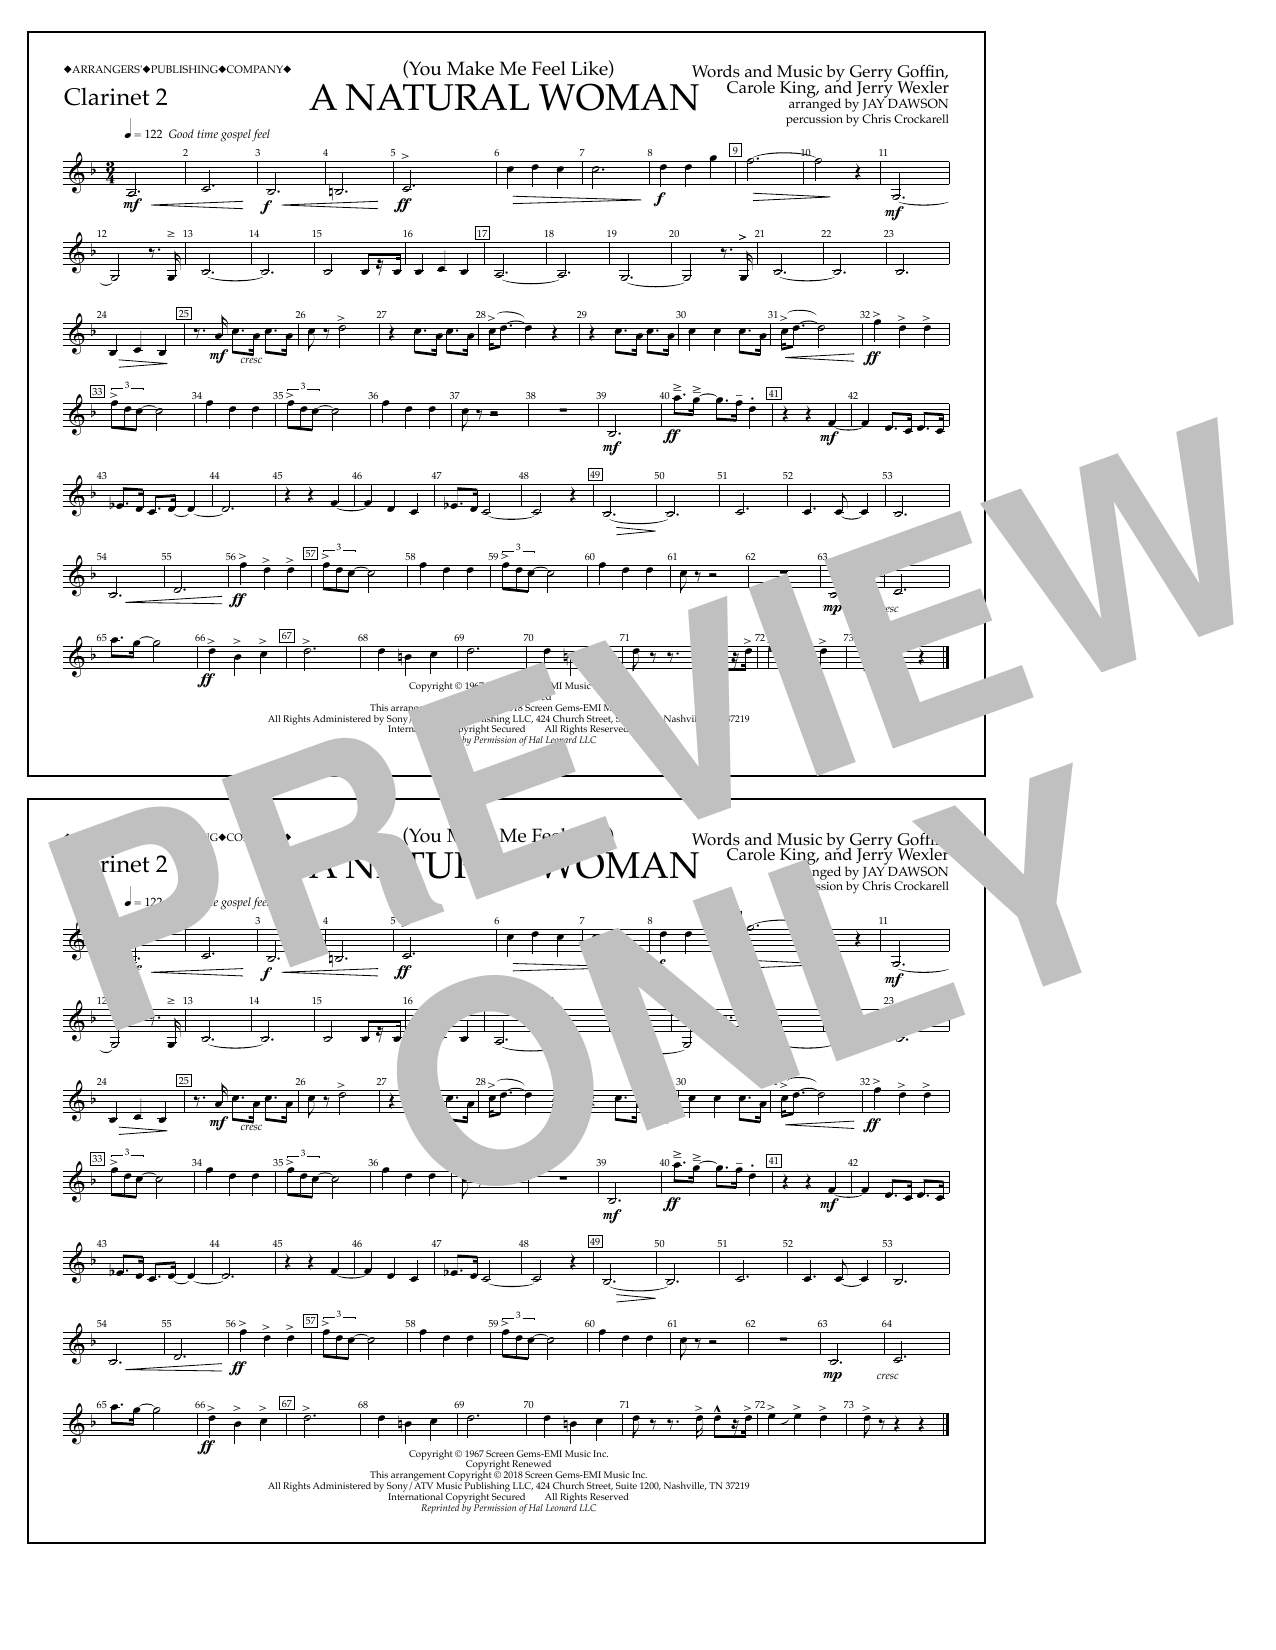 Download Aretha Franklin '(You Make Me Feel Like) A Natural Woman (arr. Jay Dawson) - Clarinet 2' Digital Sheet Music Notes & Chords and start playing in minutes